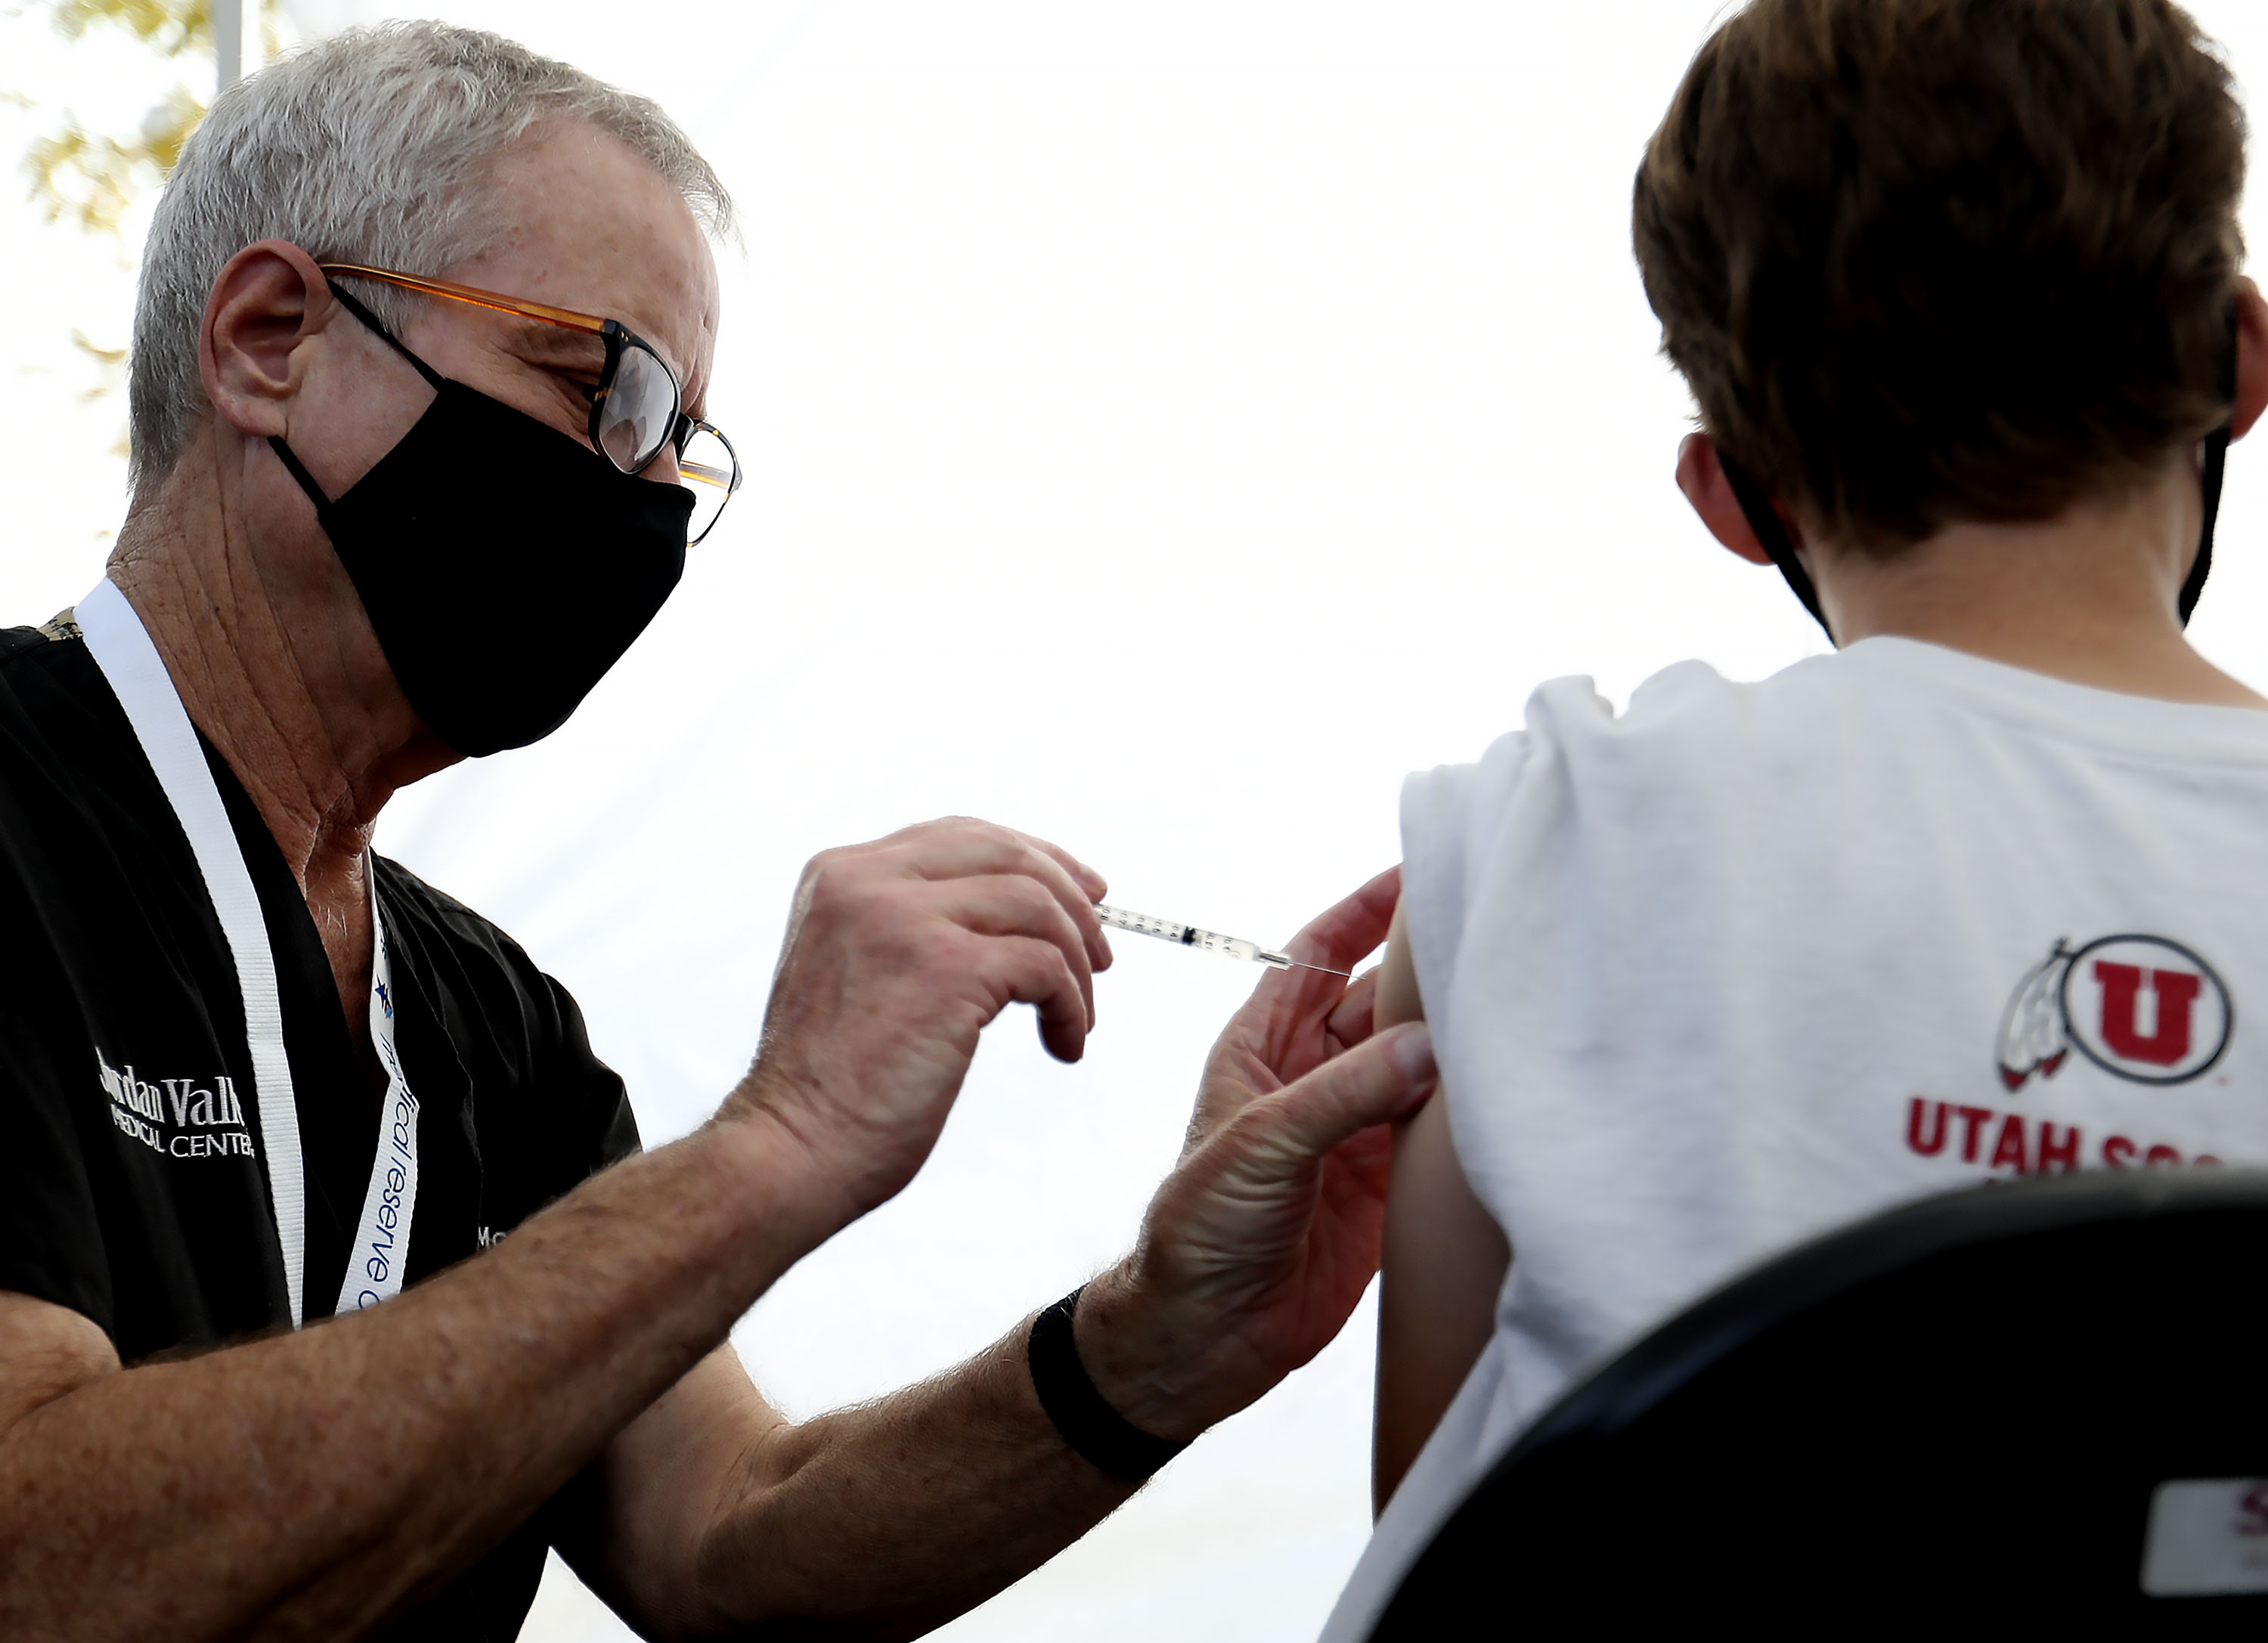 David McKay administers a COVID-19 vaccination to a 12-year-old boy at Rose Park Elementary in Salt Lake City on Wednesday, Sept. 22, 2021.